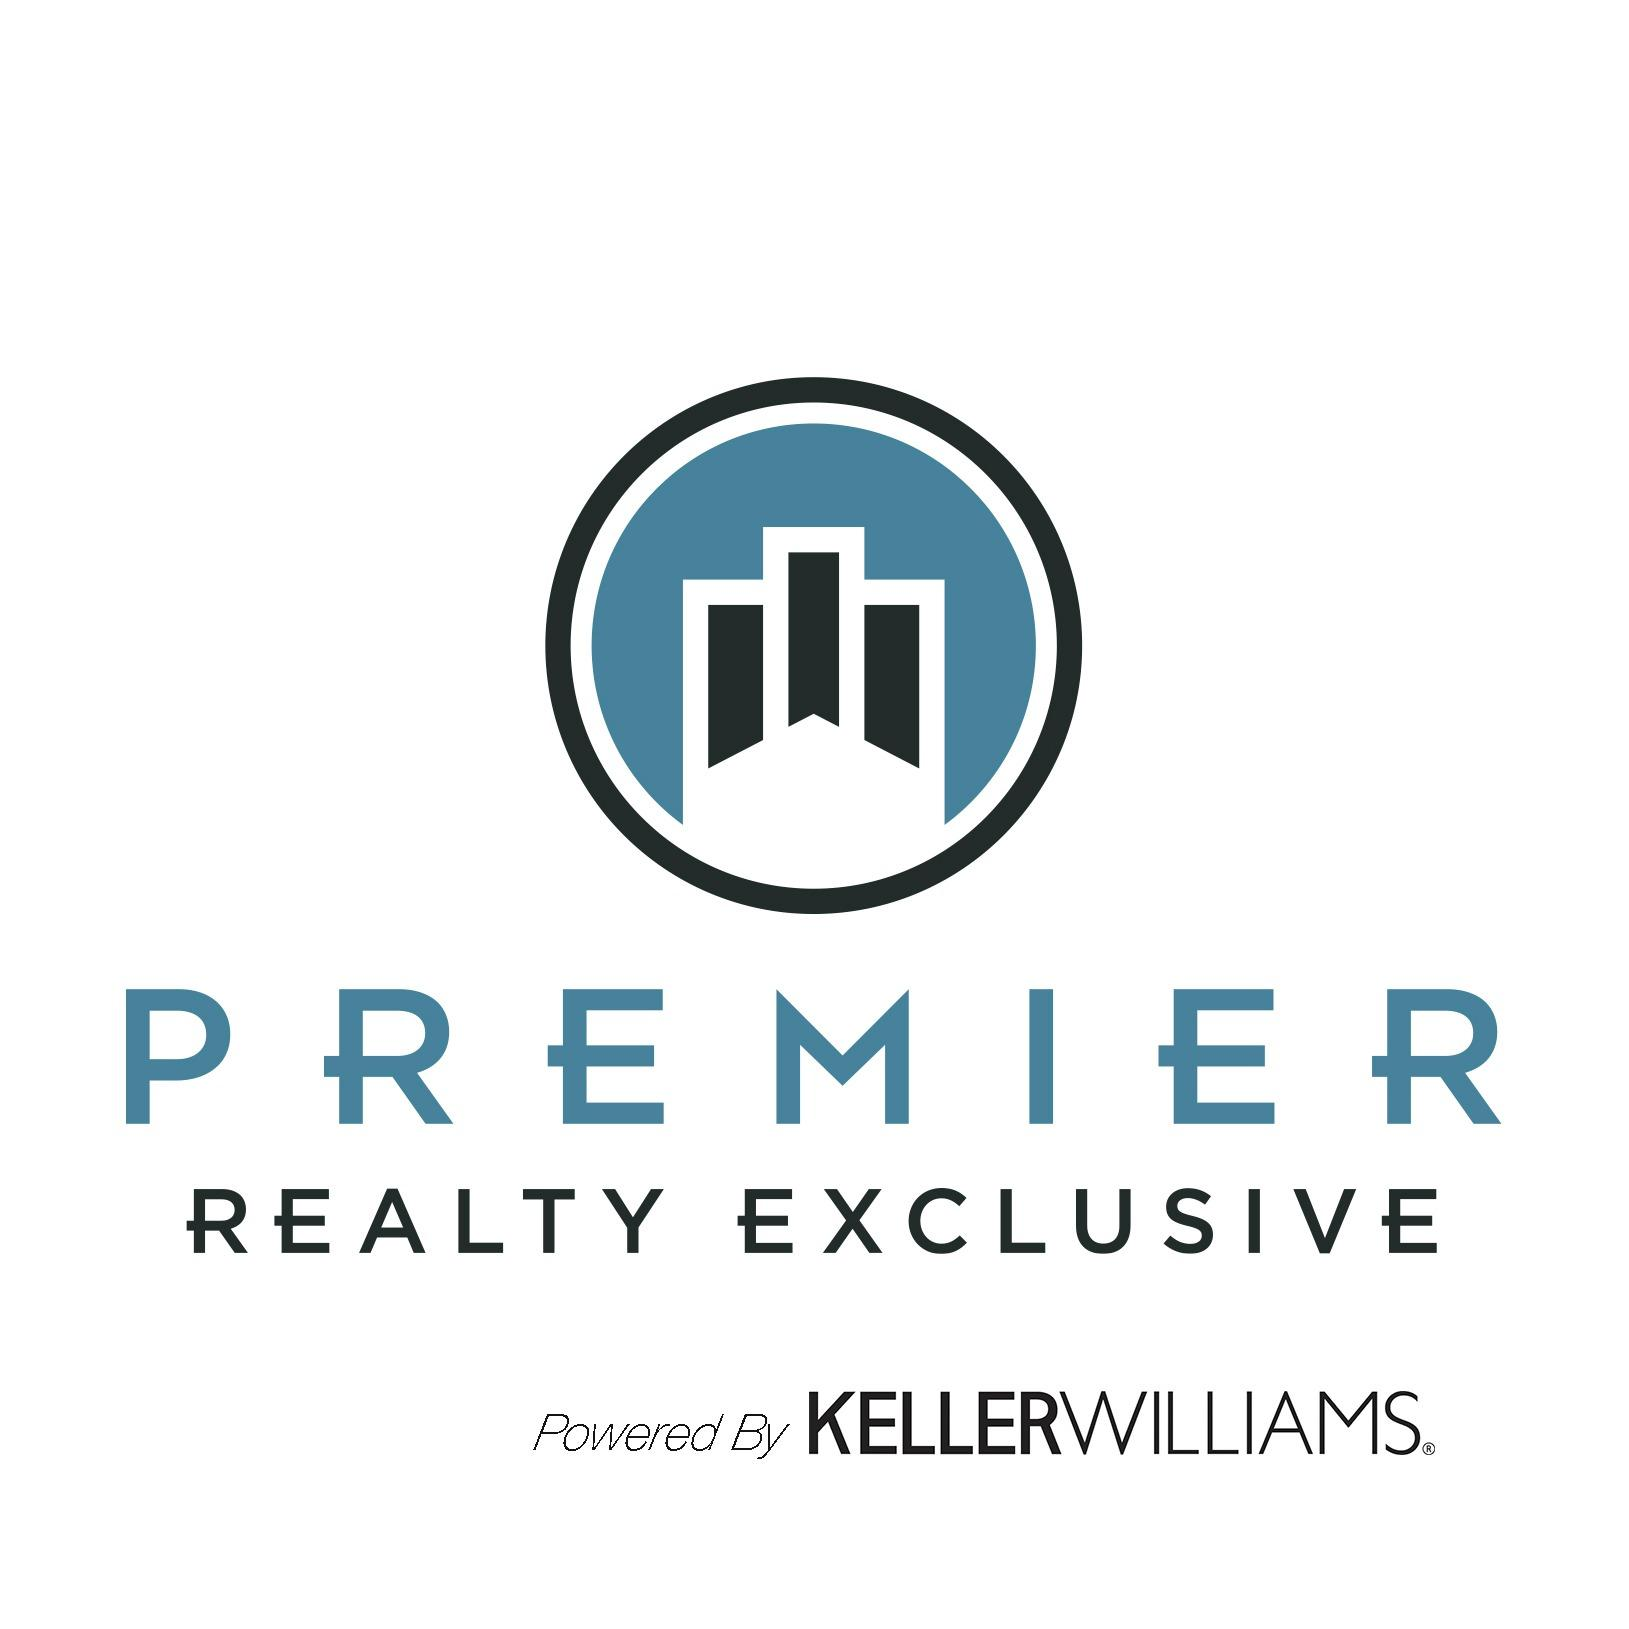 Premier Realty Exclusive